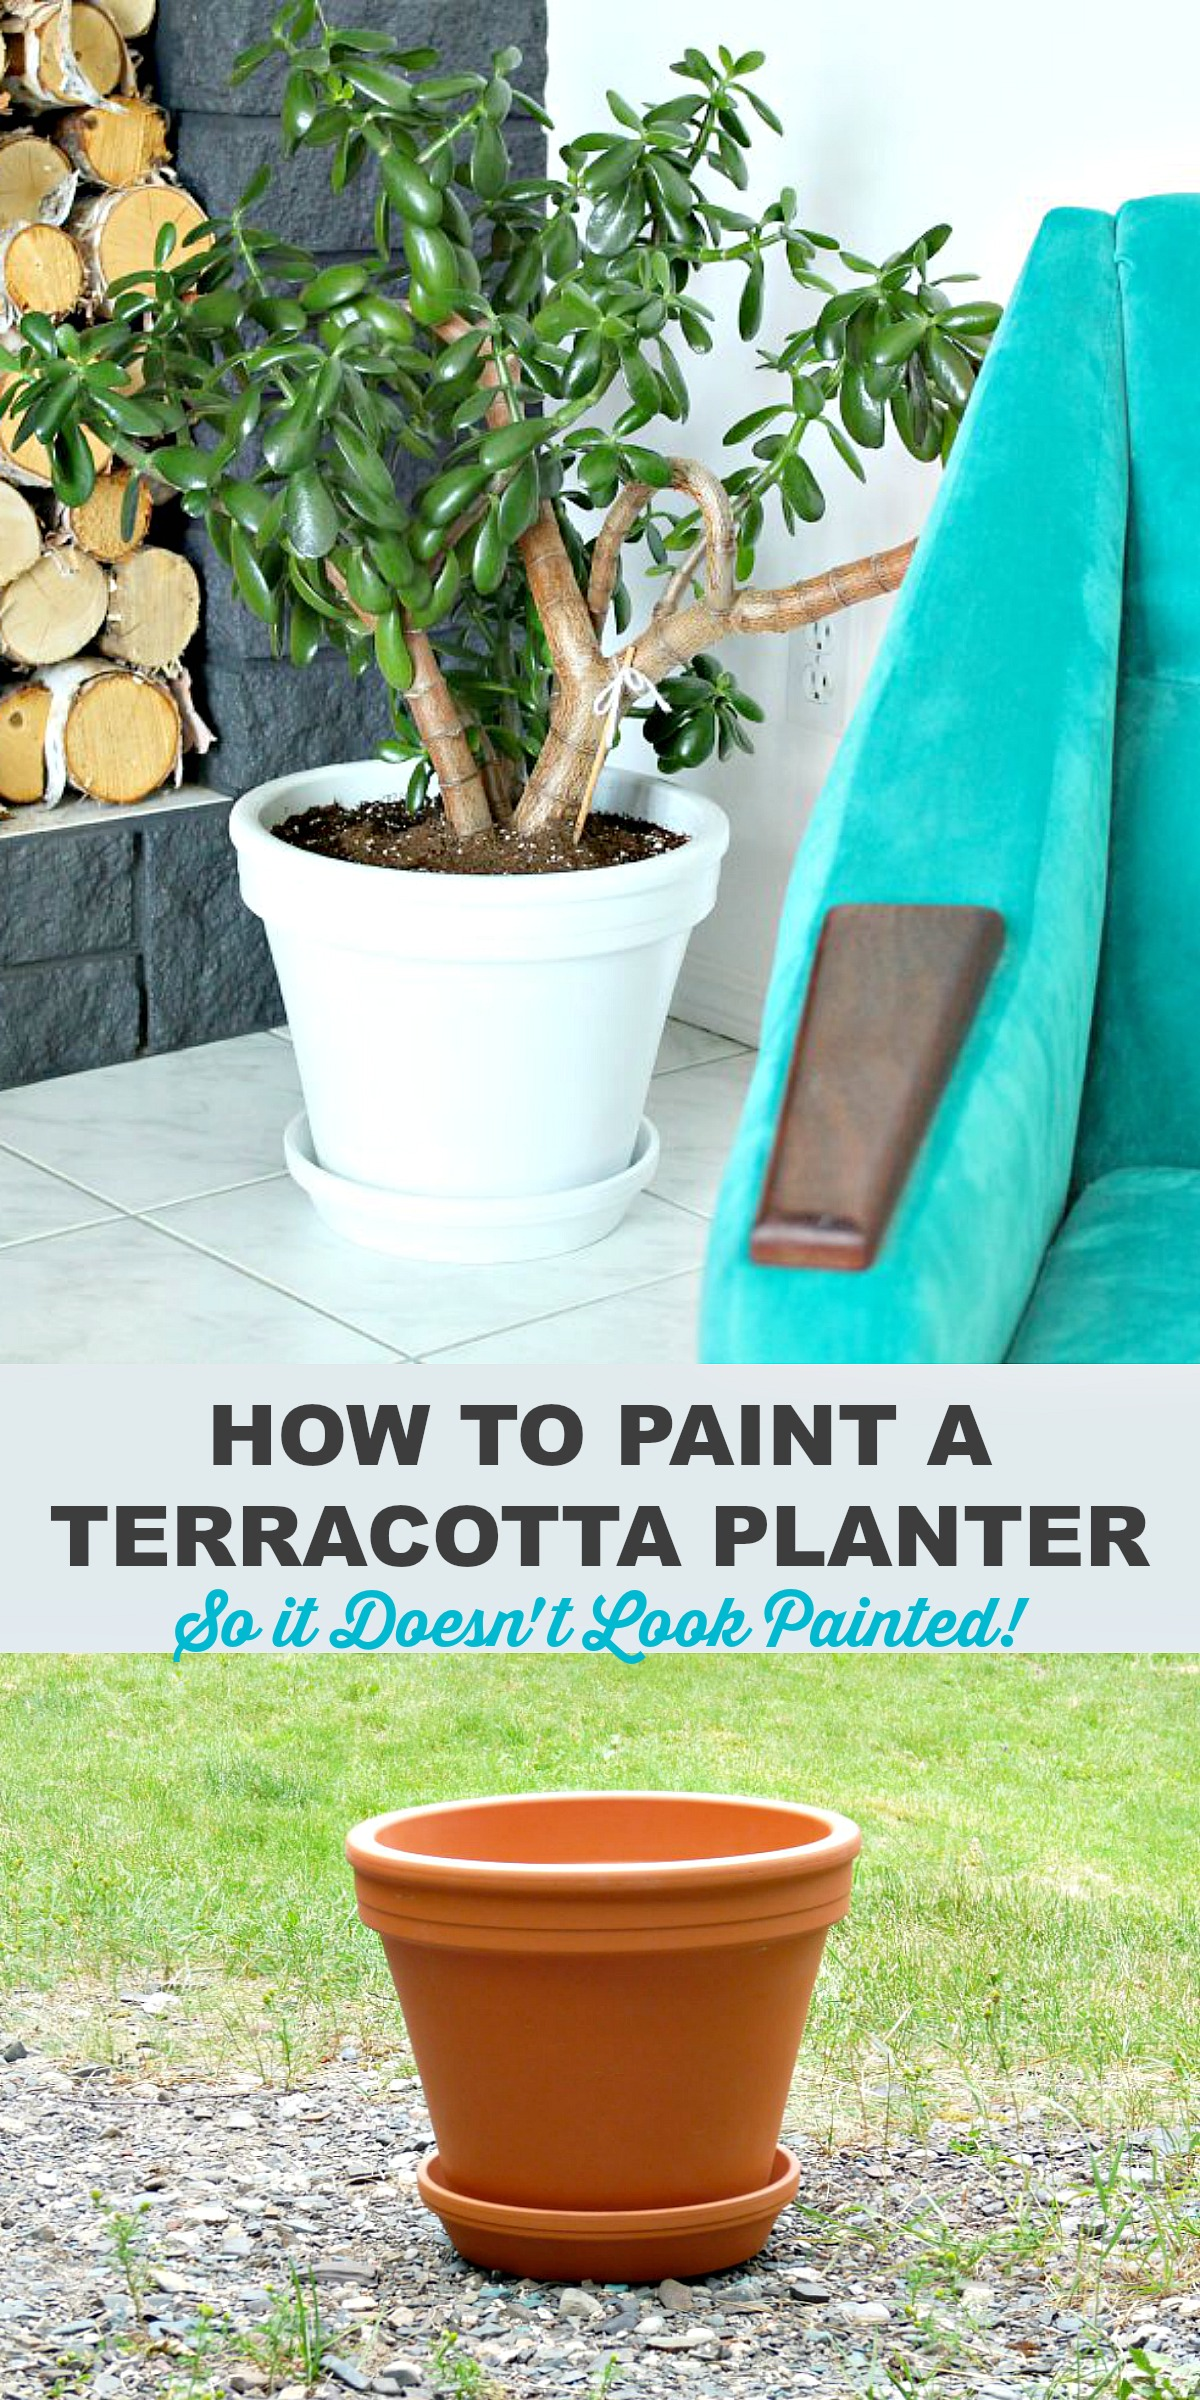 How to paint terracotta planter so they don't look painted